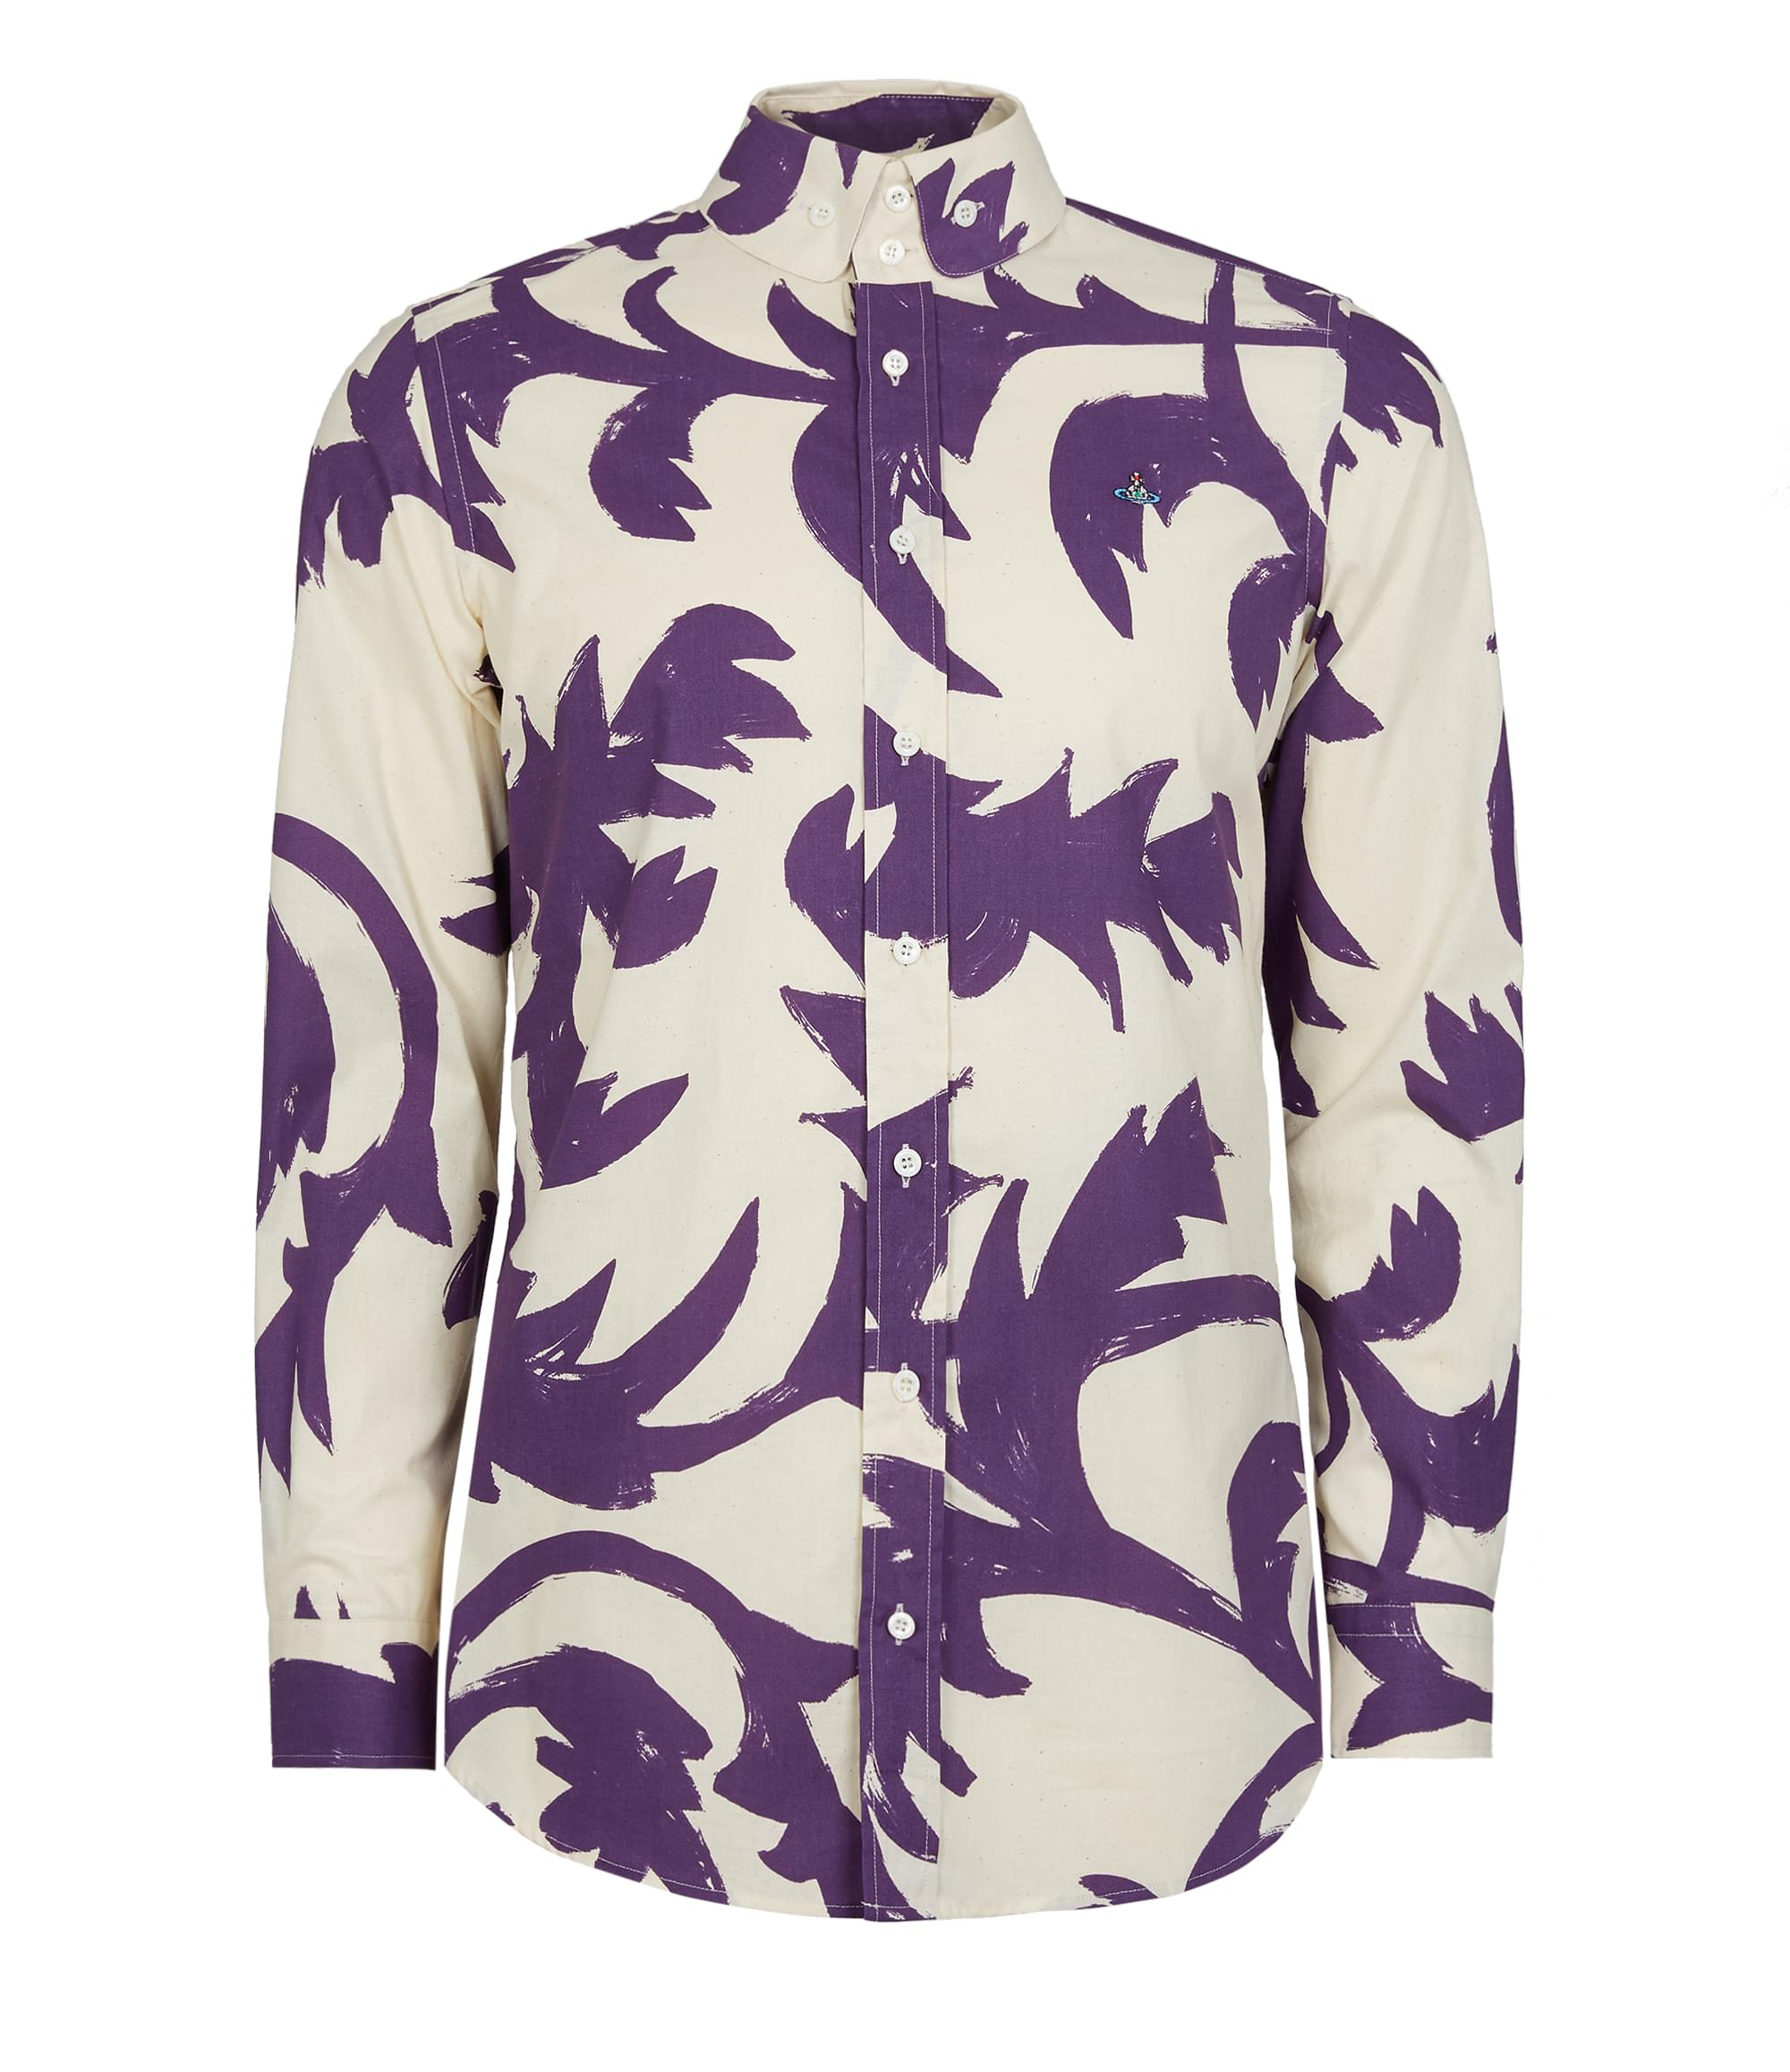 Vivienne Westwood Two Button Krall Shirt Purple Leaves